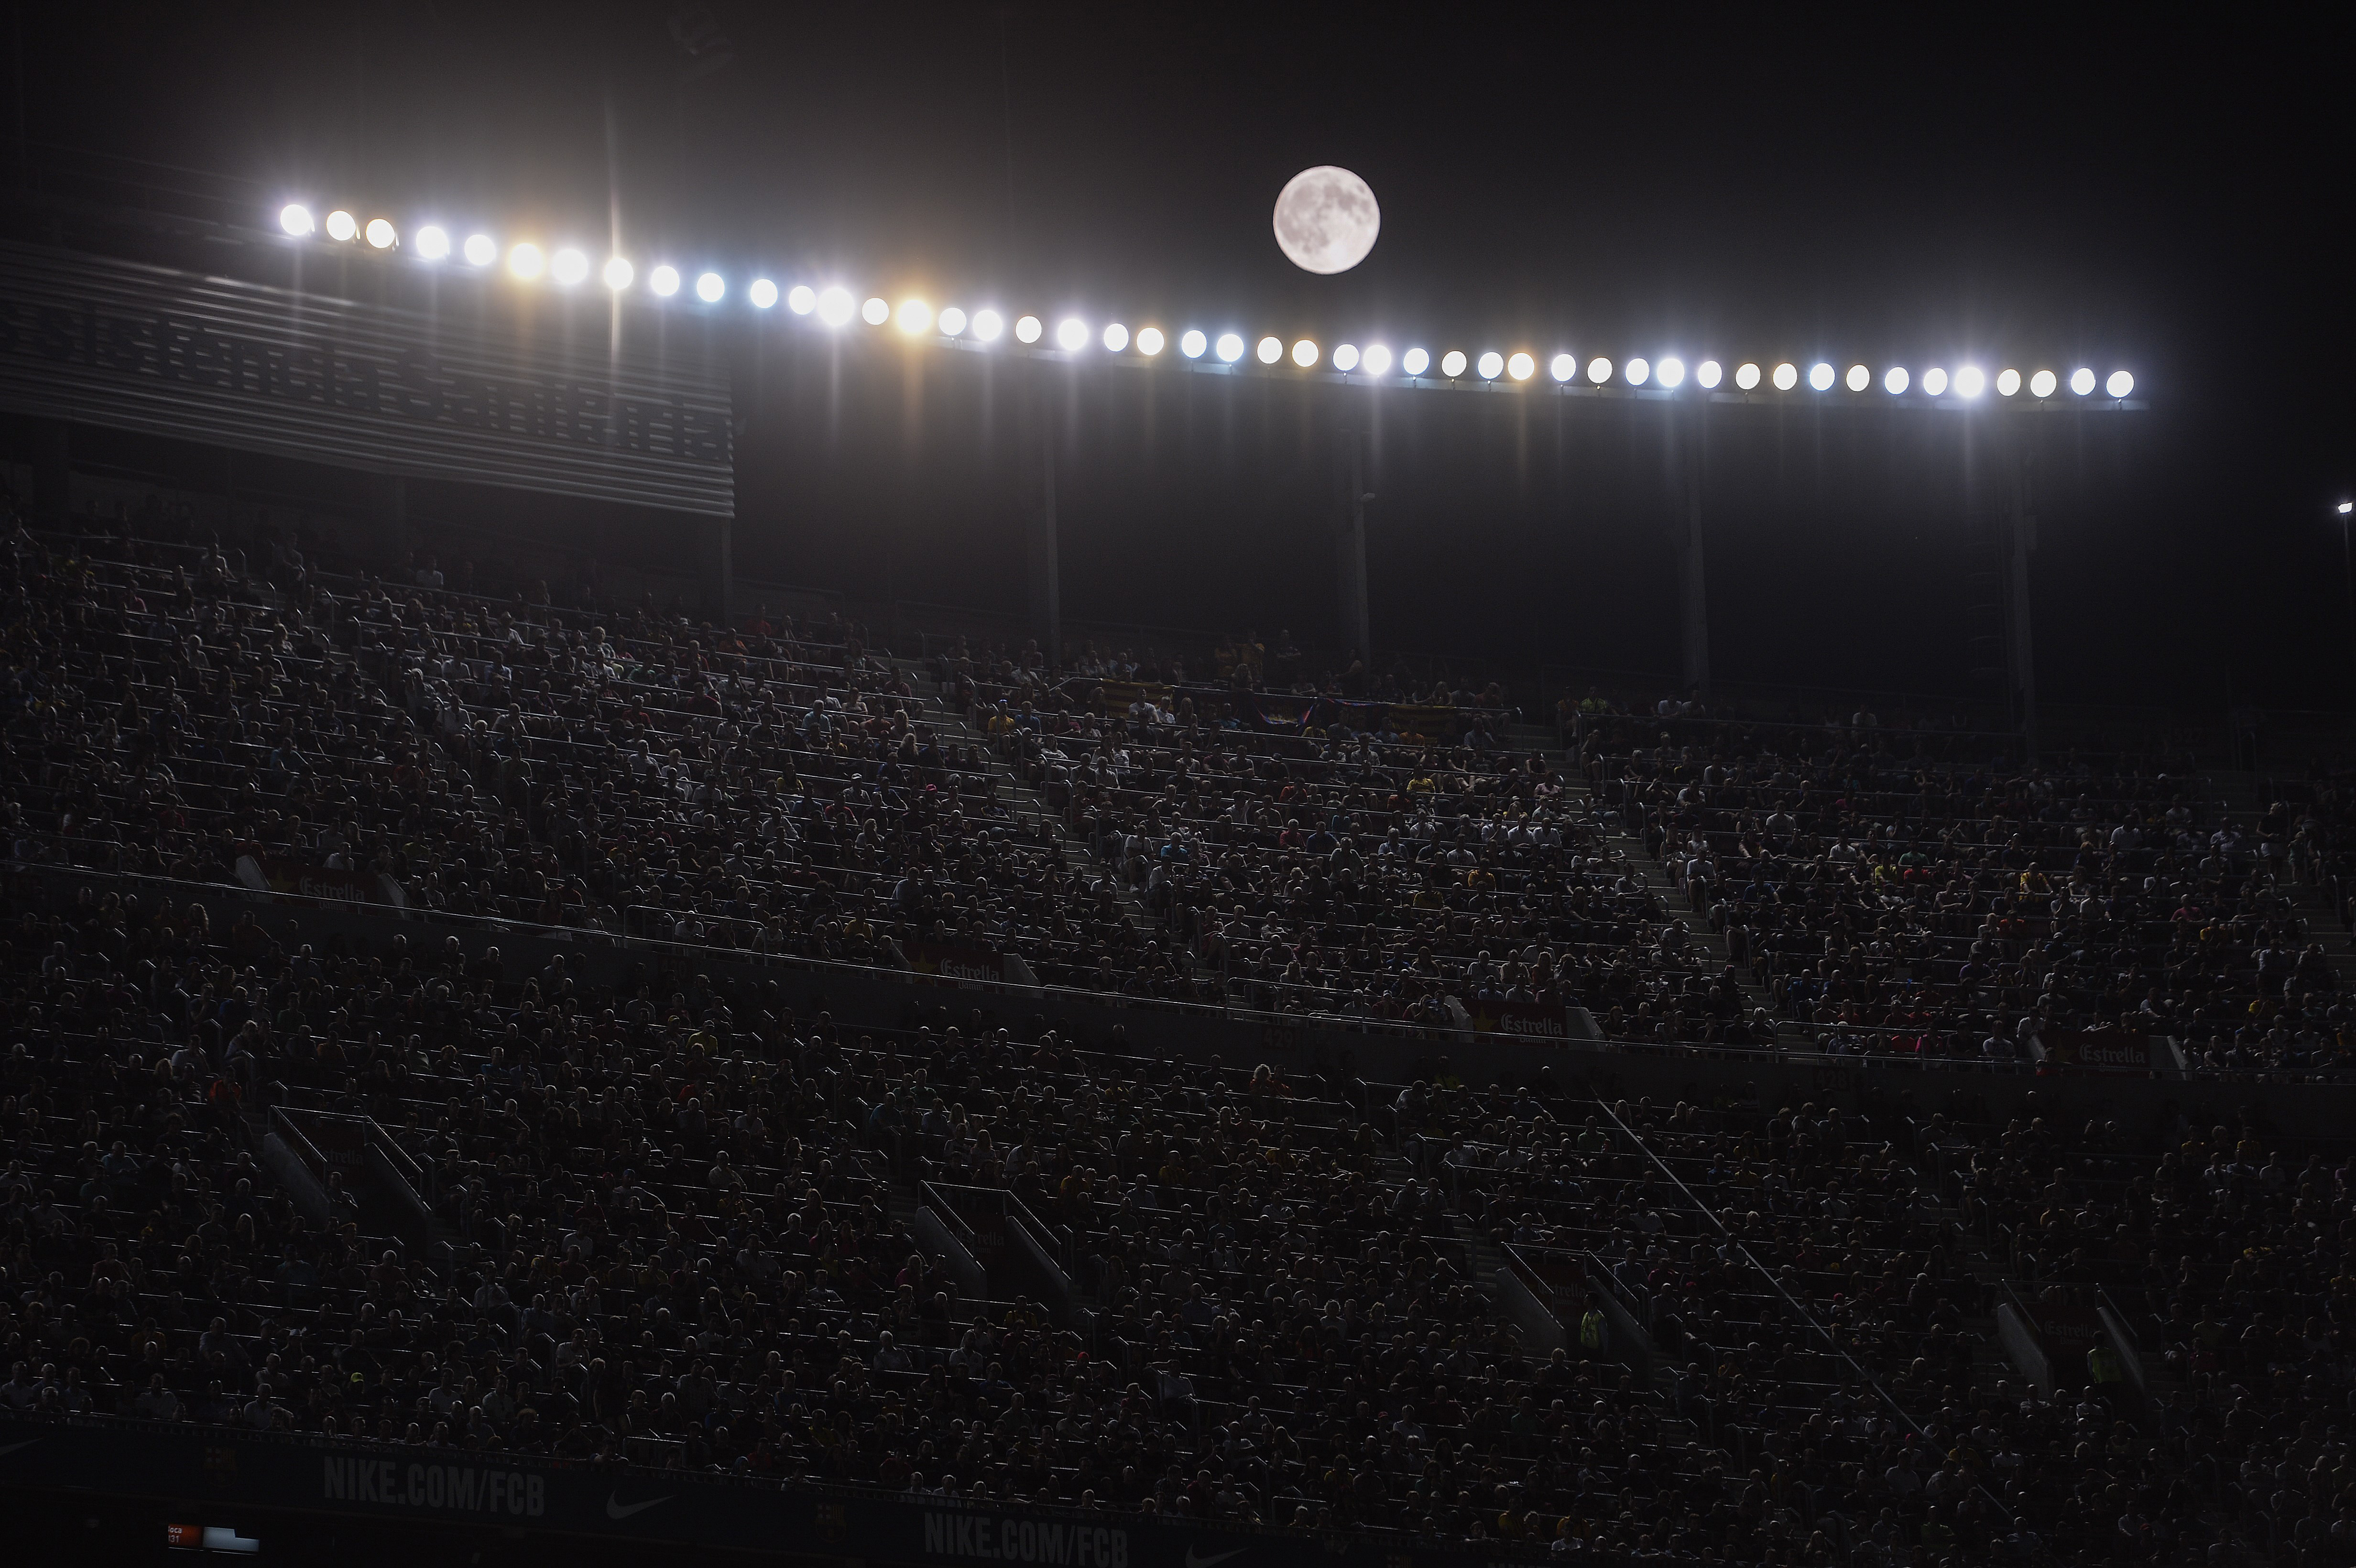 The moon shines during the Spanish league football match FC Barcelona vs Malaga CF at the Camp Nou stadium in Barcelona on Aug. 29, 2015.